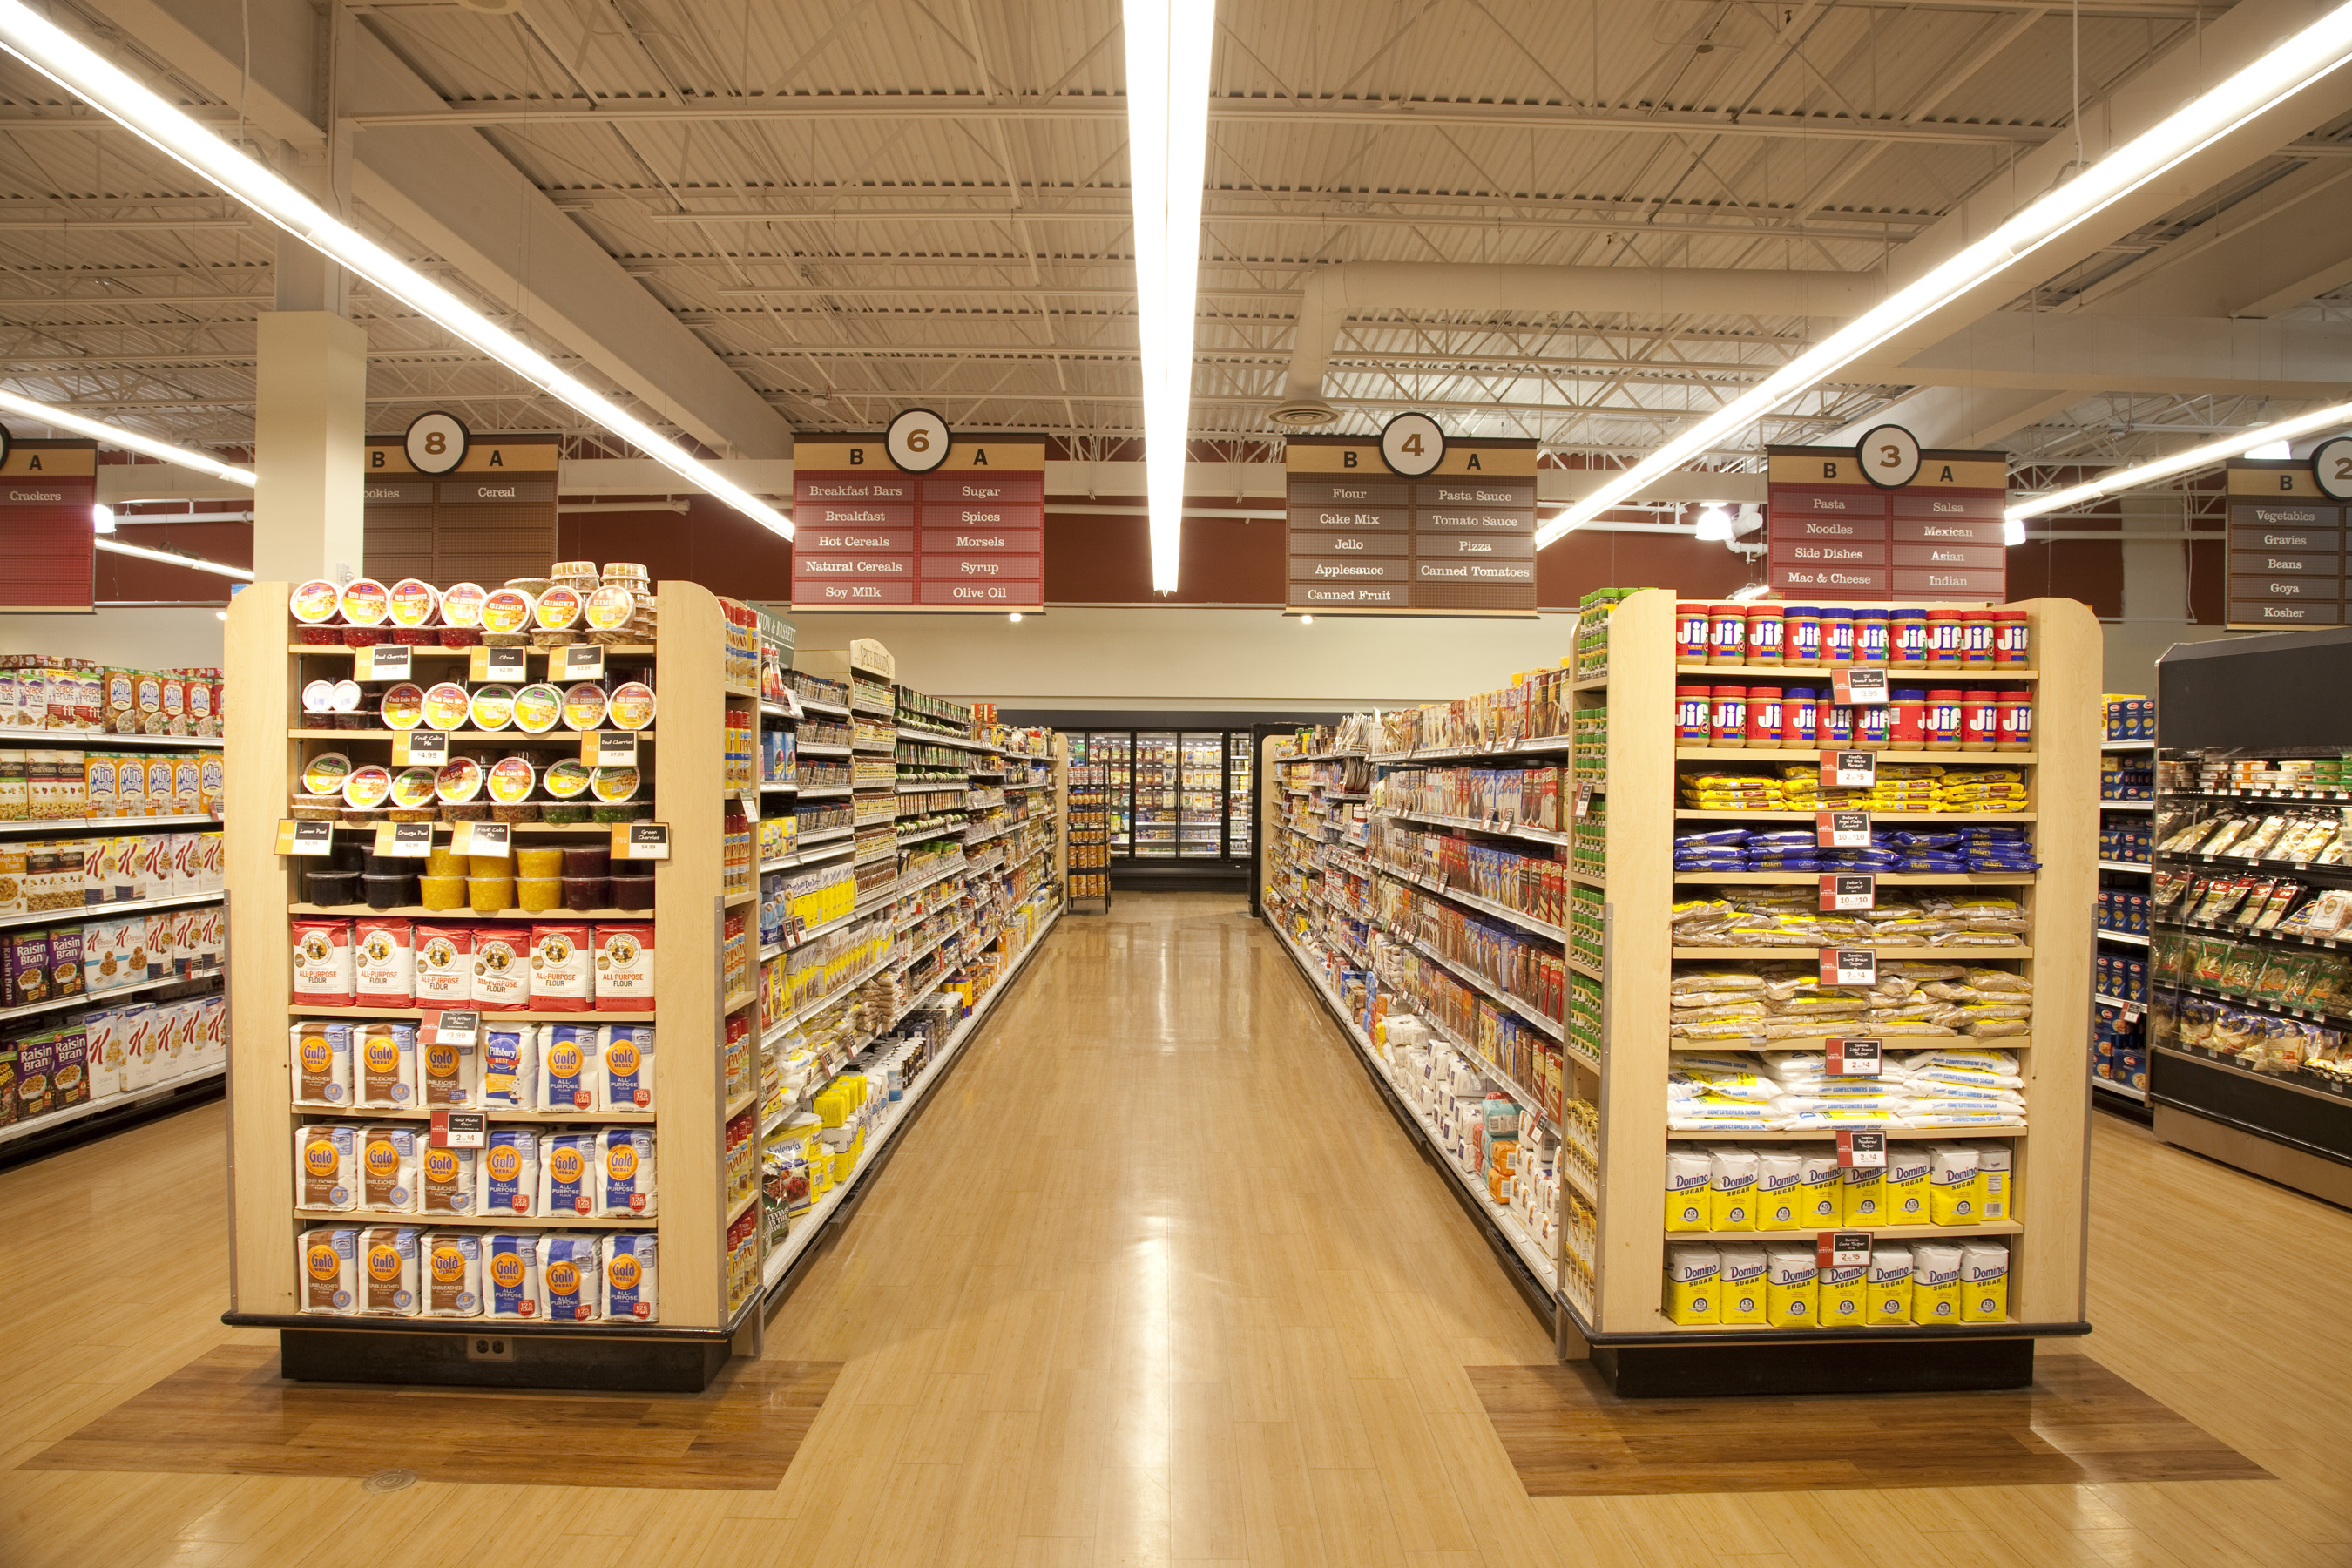 Grocer Finds GEs New LED Fixture IS The Answer For Lighting That Lasts GE North